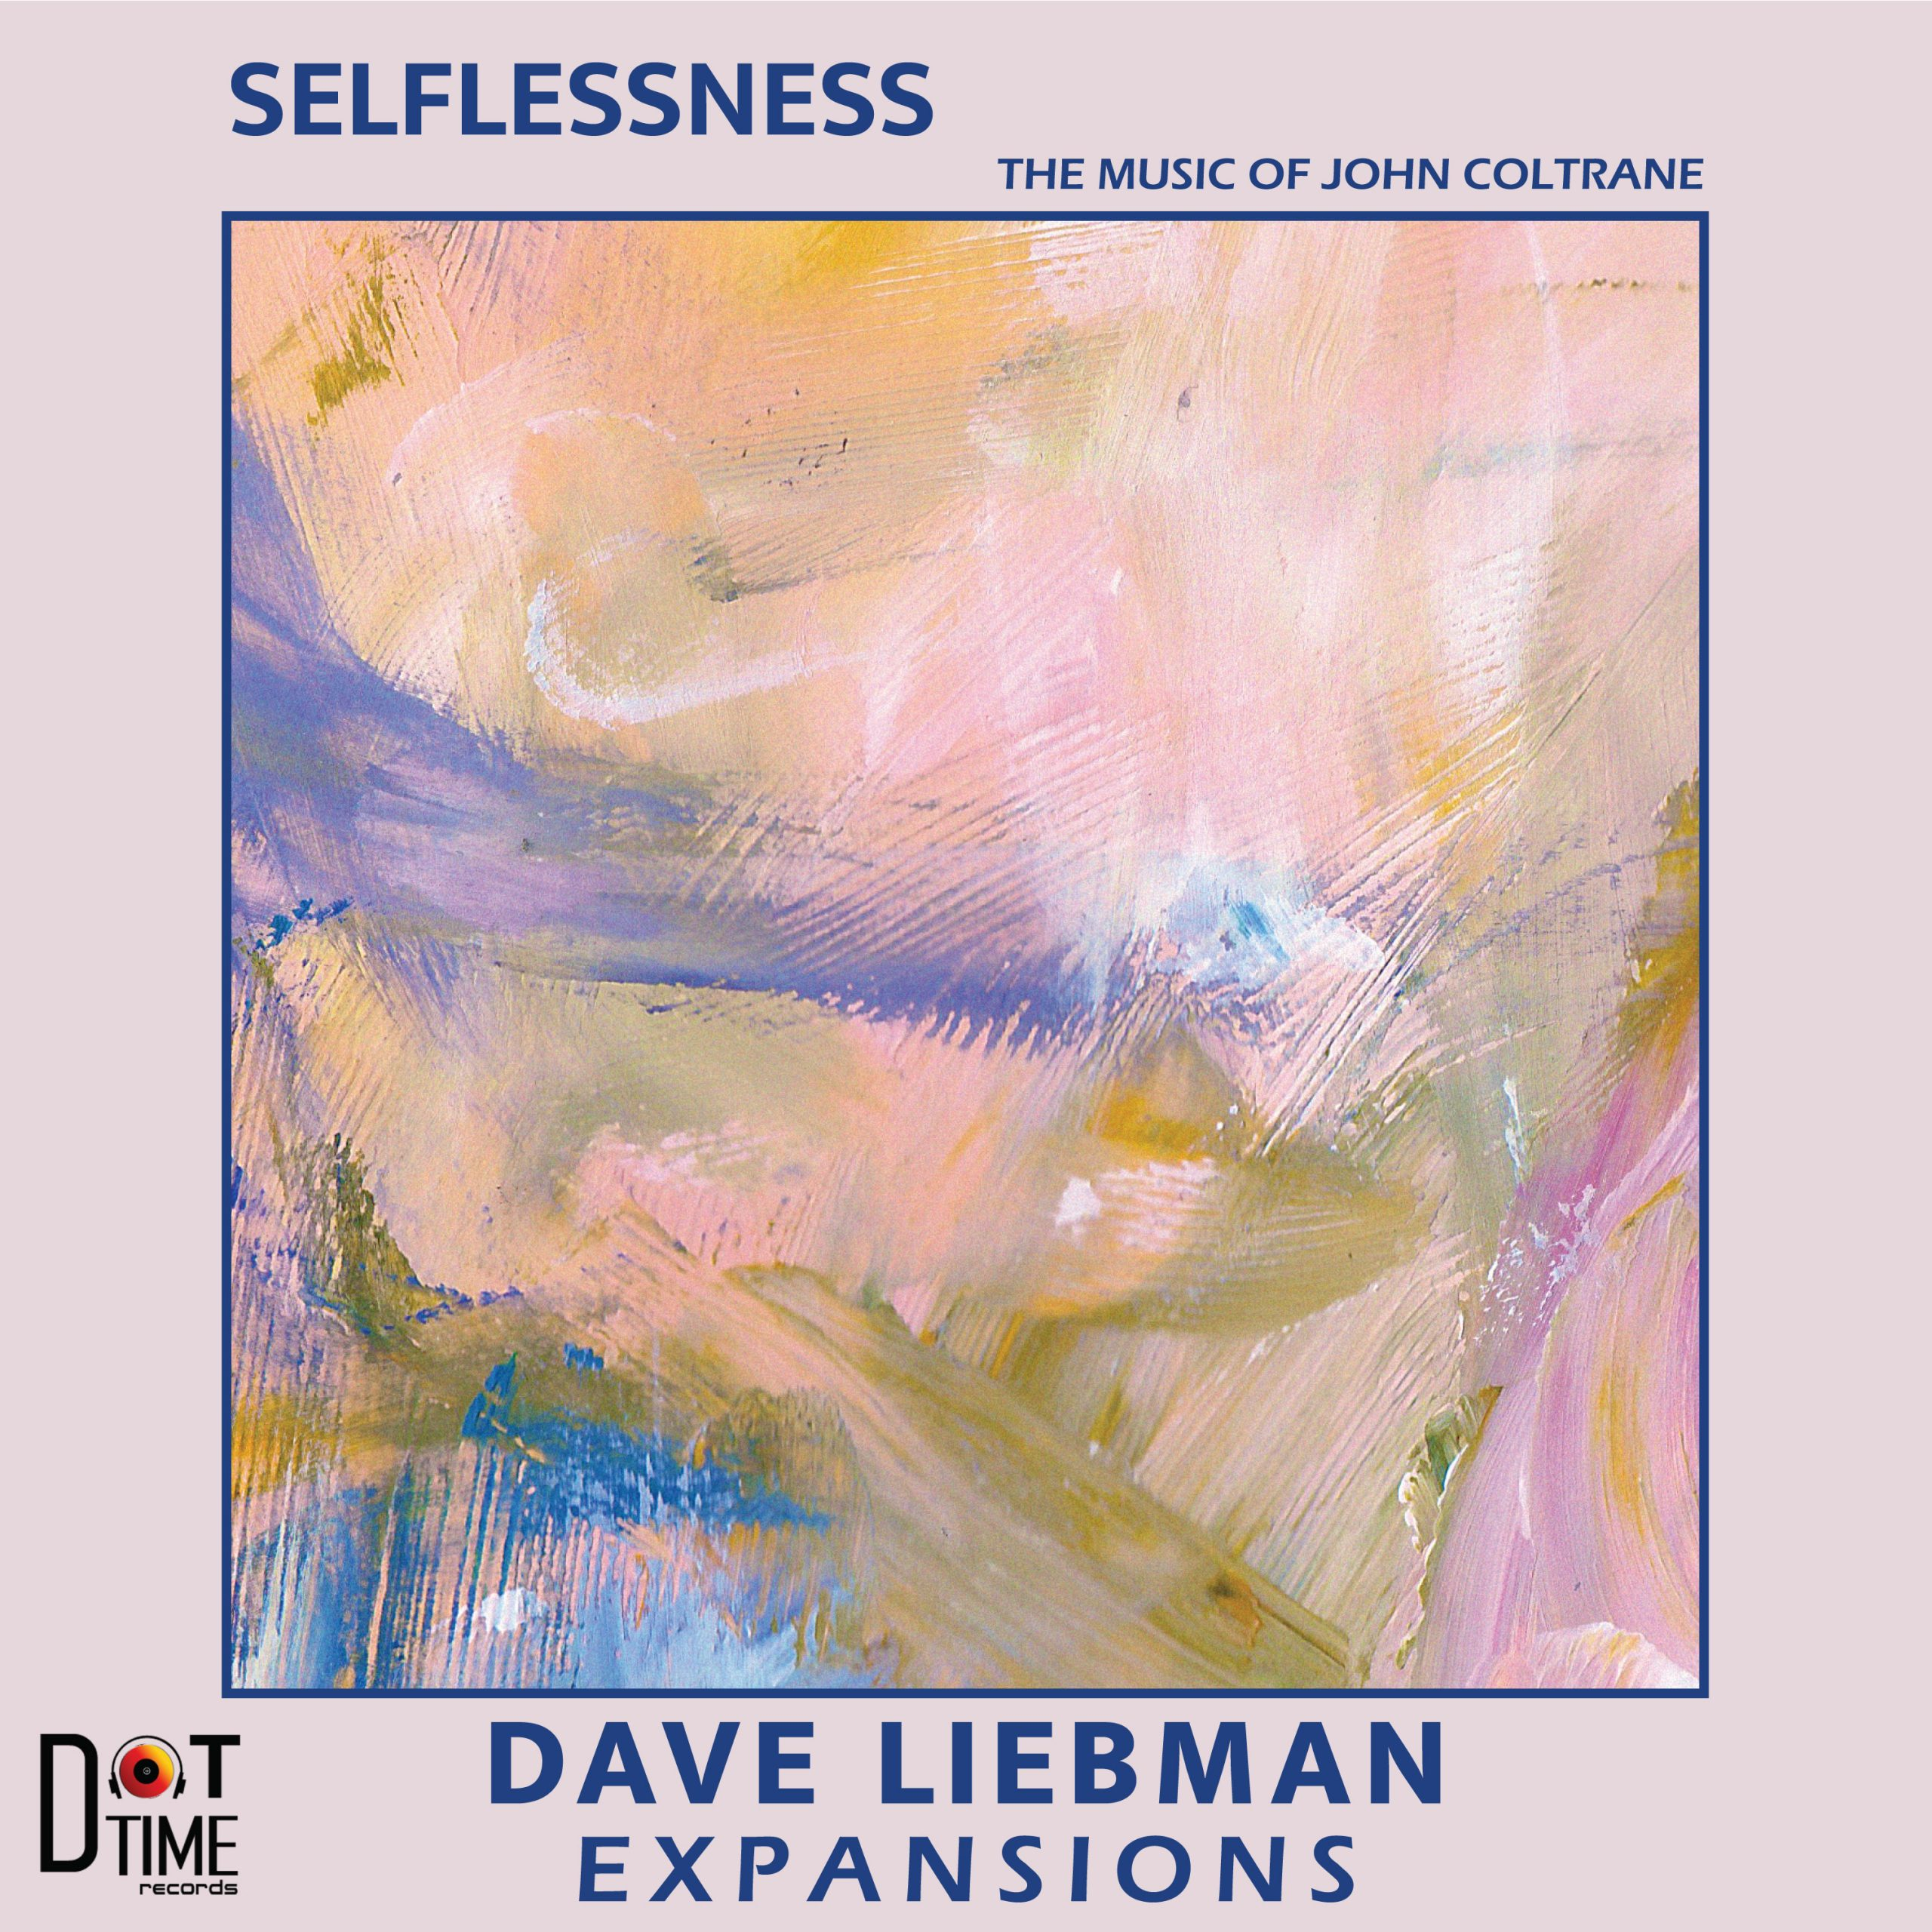 """Best Jazz On Band Camp: Dave Liebman Expansions """"Selflessness"""" The Music of John Coltrane – Jazz FM 91"""